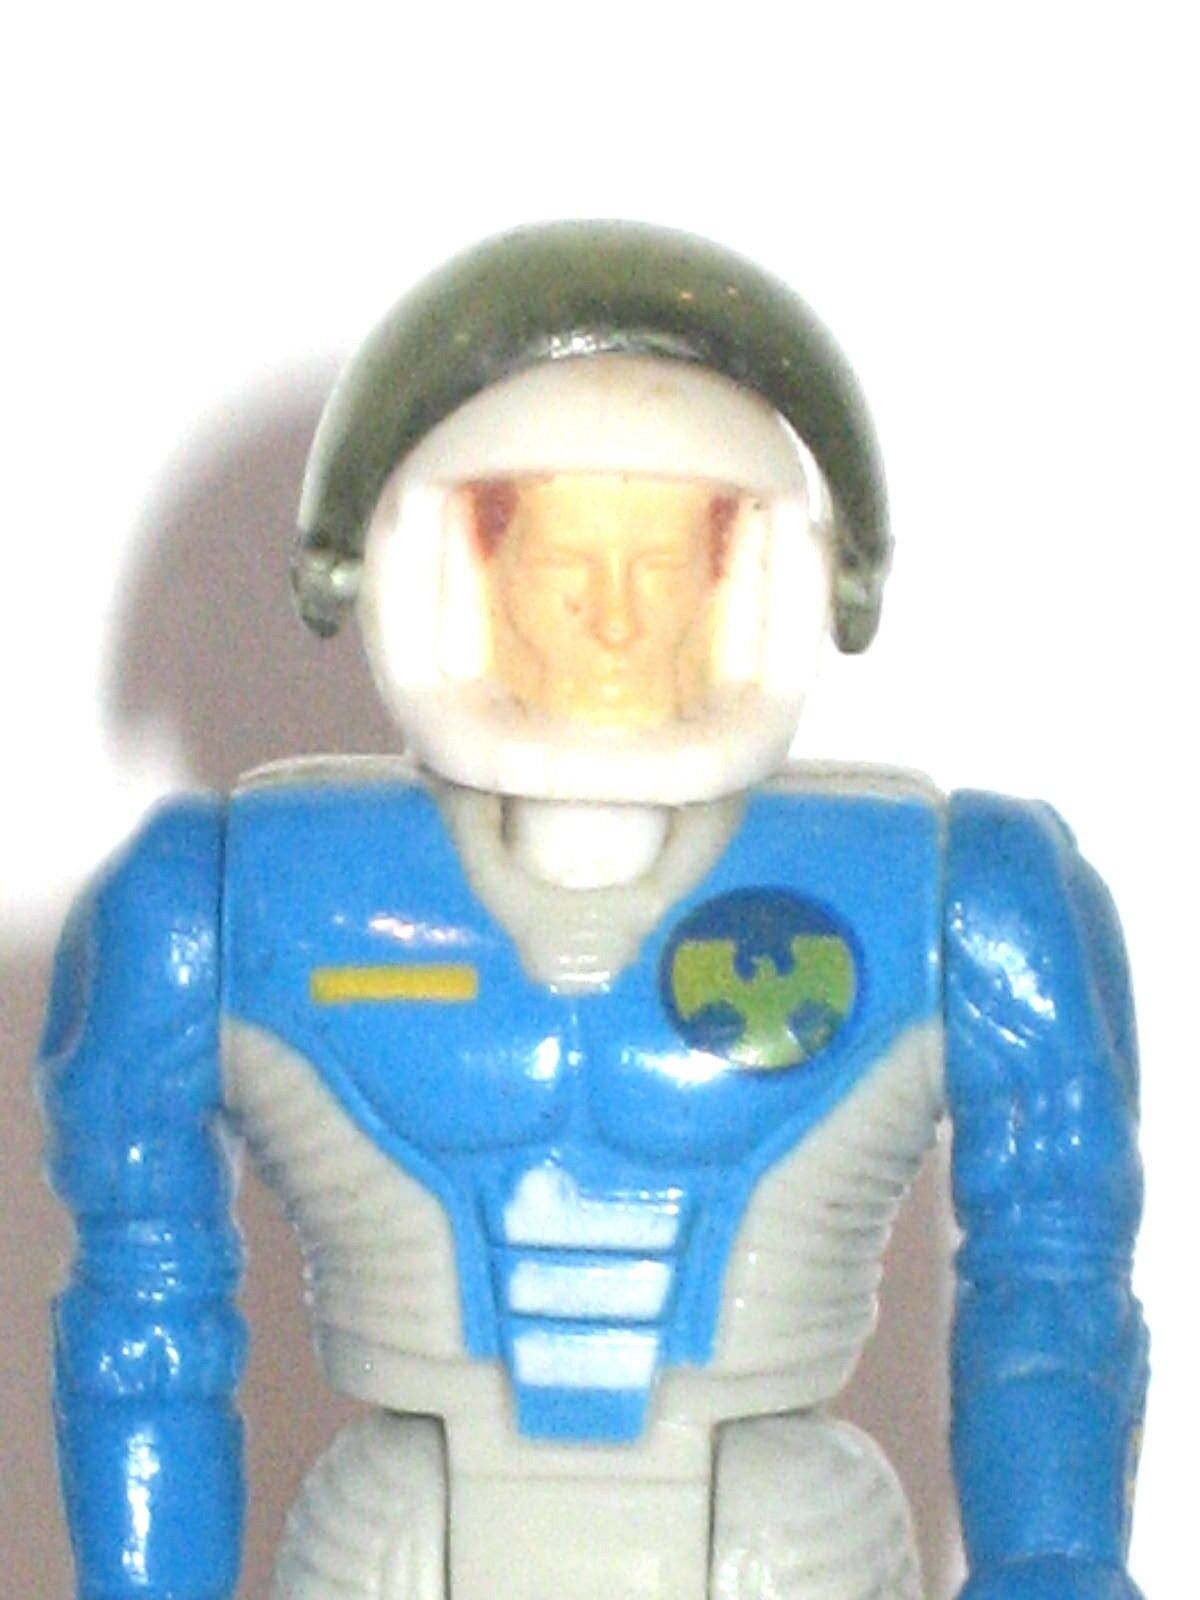 Starcom Action Action Action Figure European Exclusive Star Wing Secret Bomber w Visor 1990 9a0b73